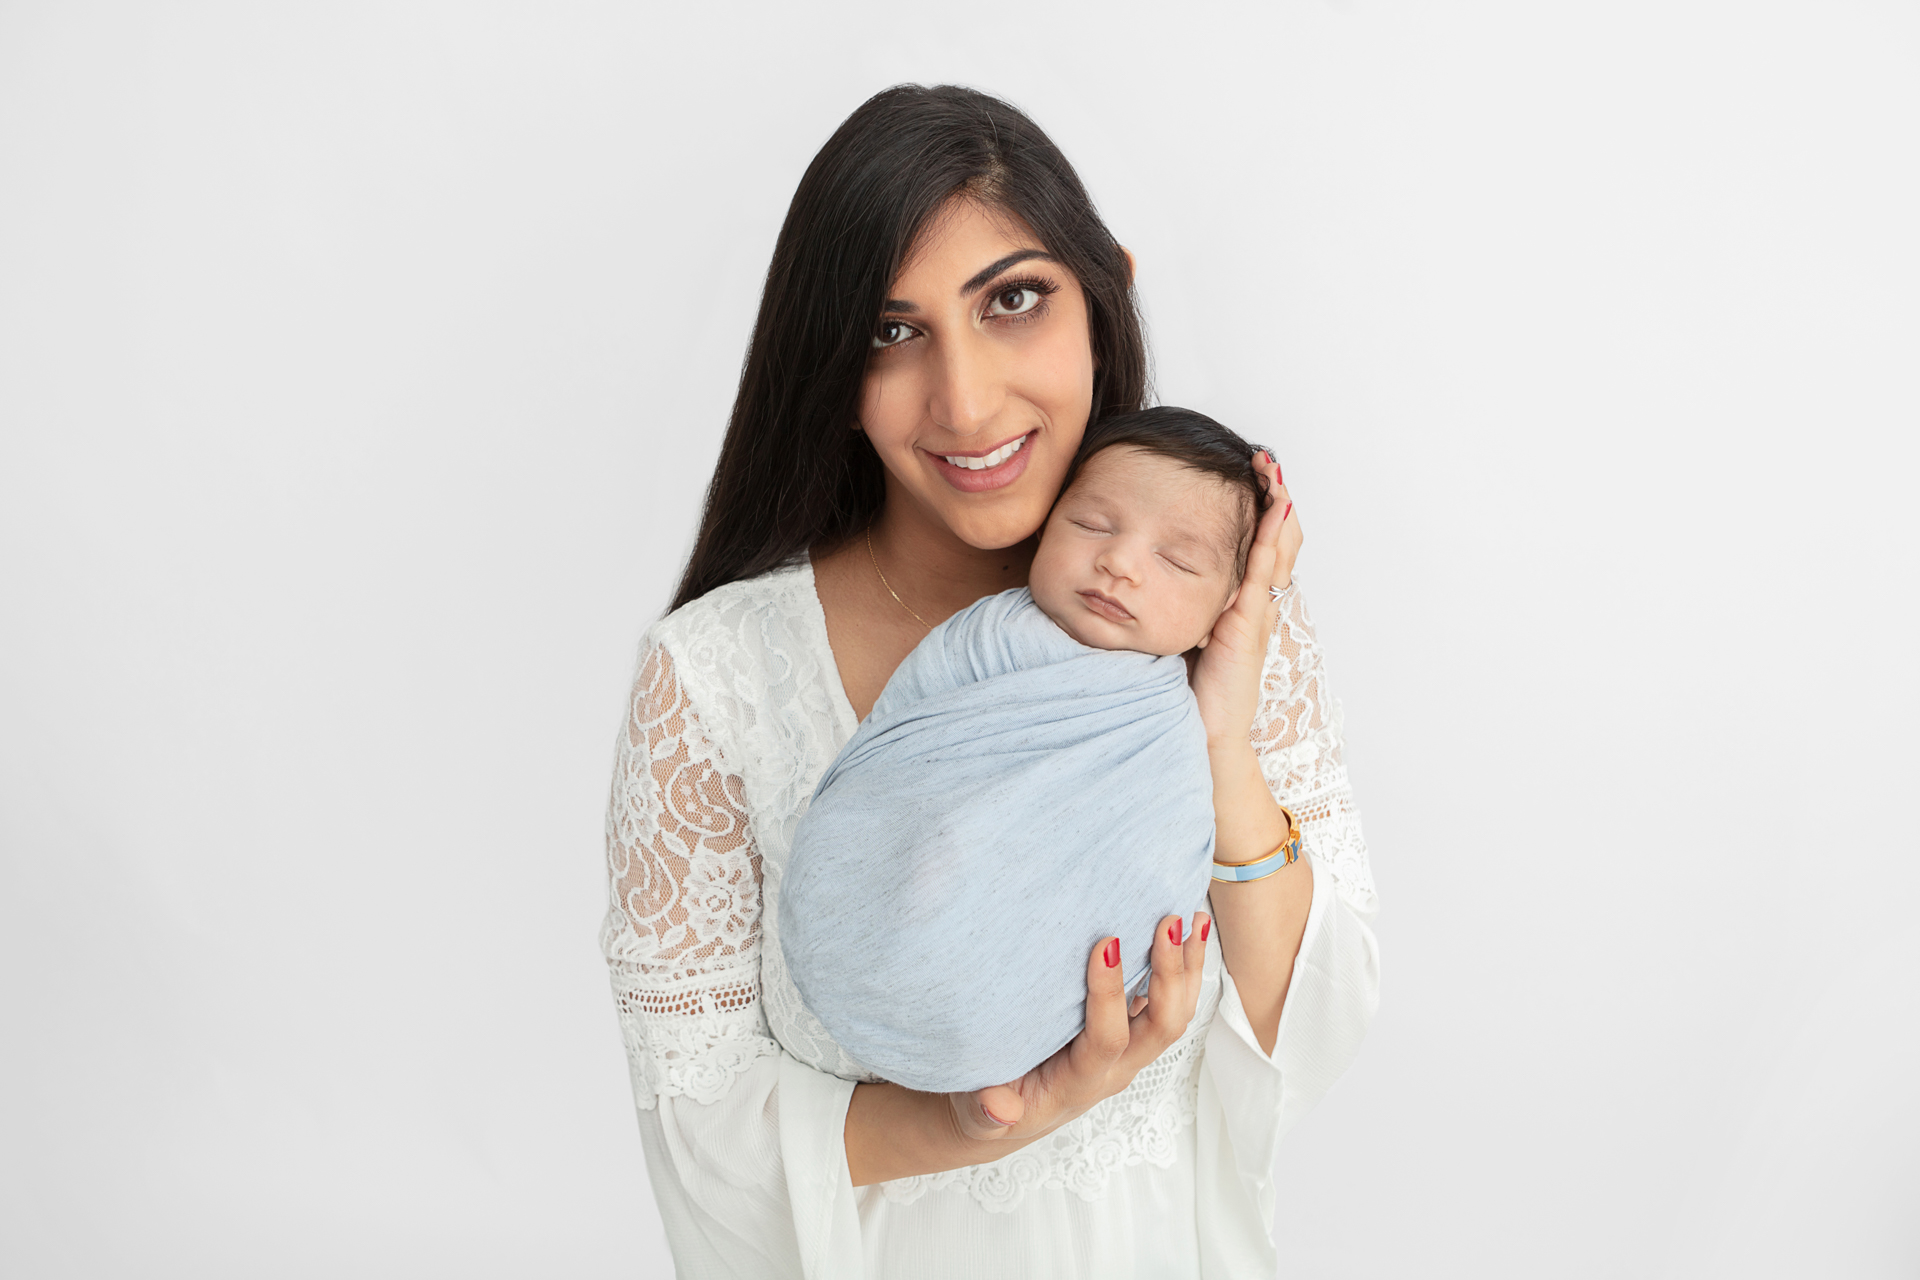 new mom with long dark hair and a white lace dress, holding her son who is swaddled in light blue